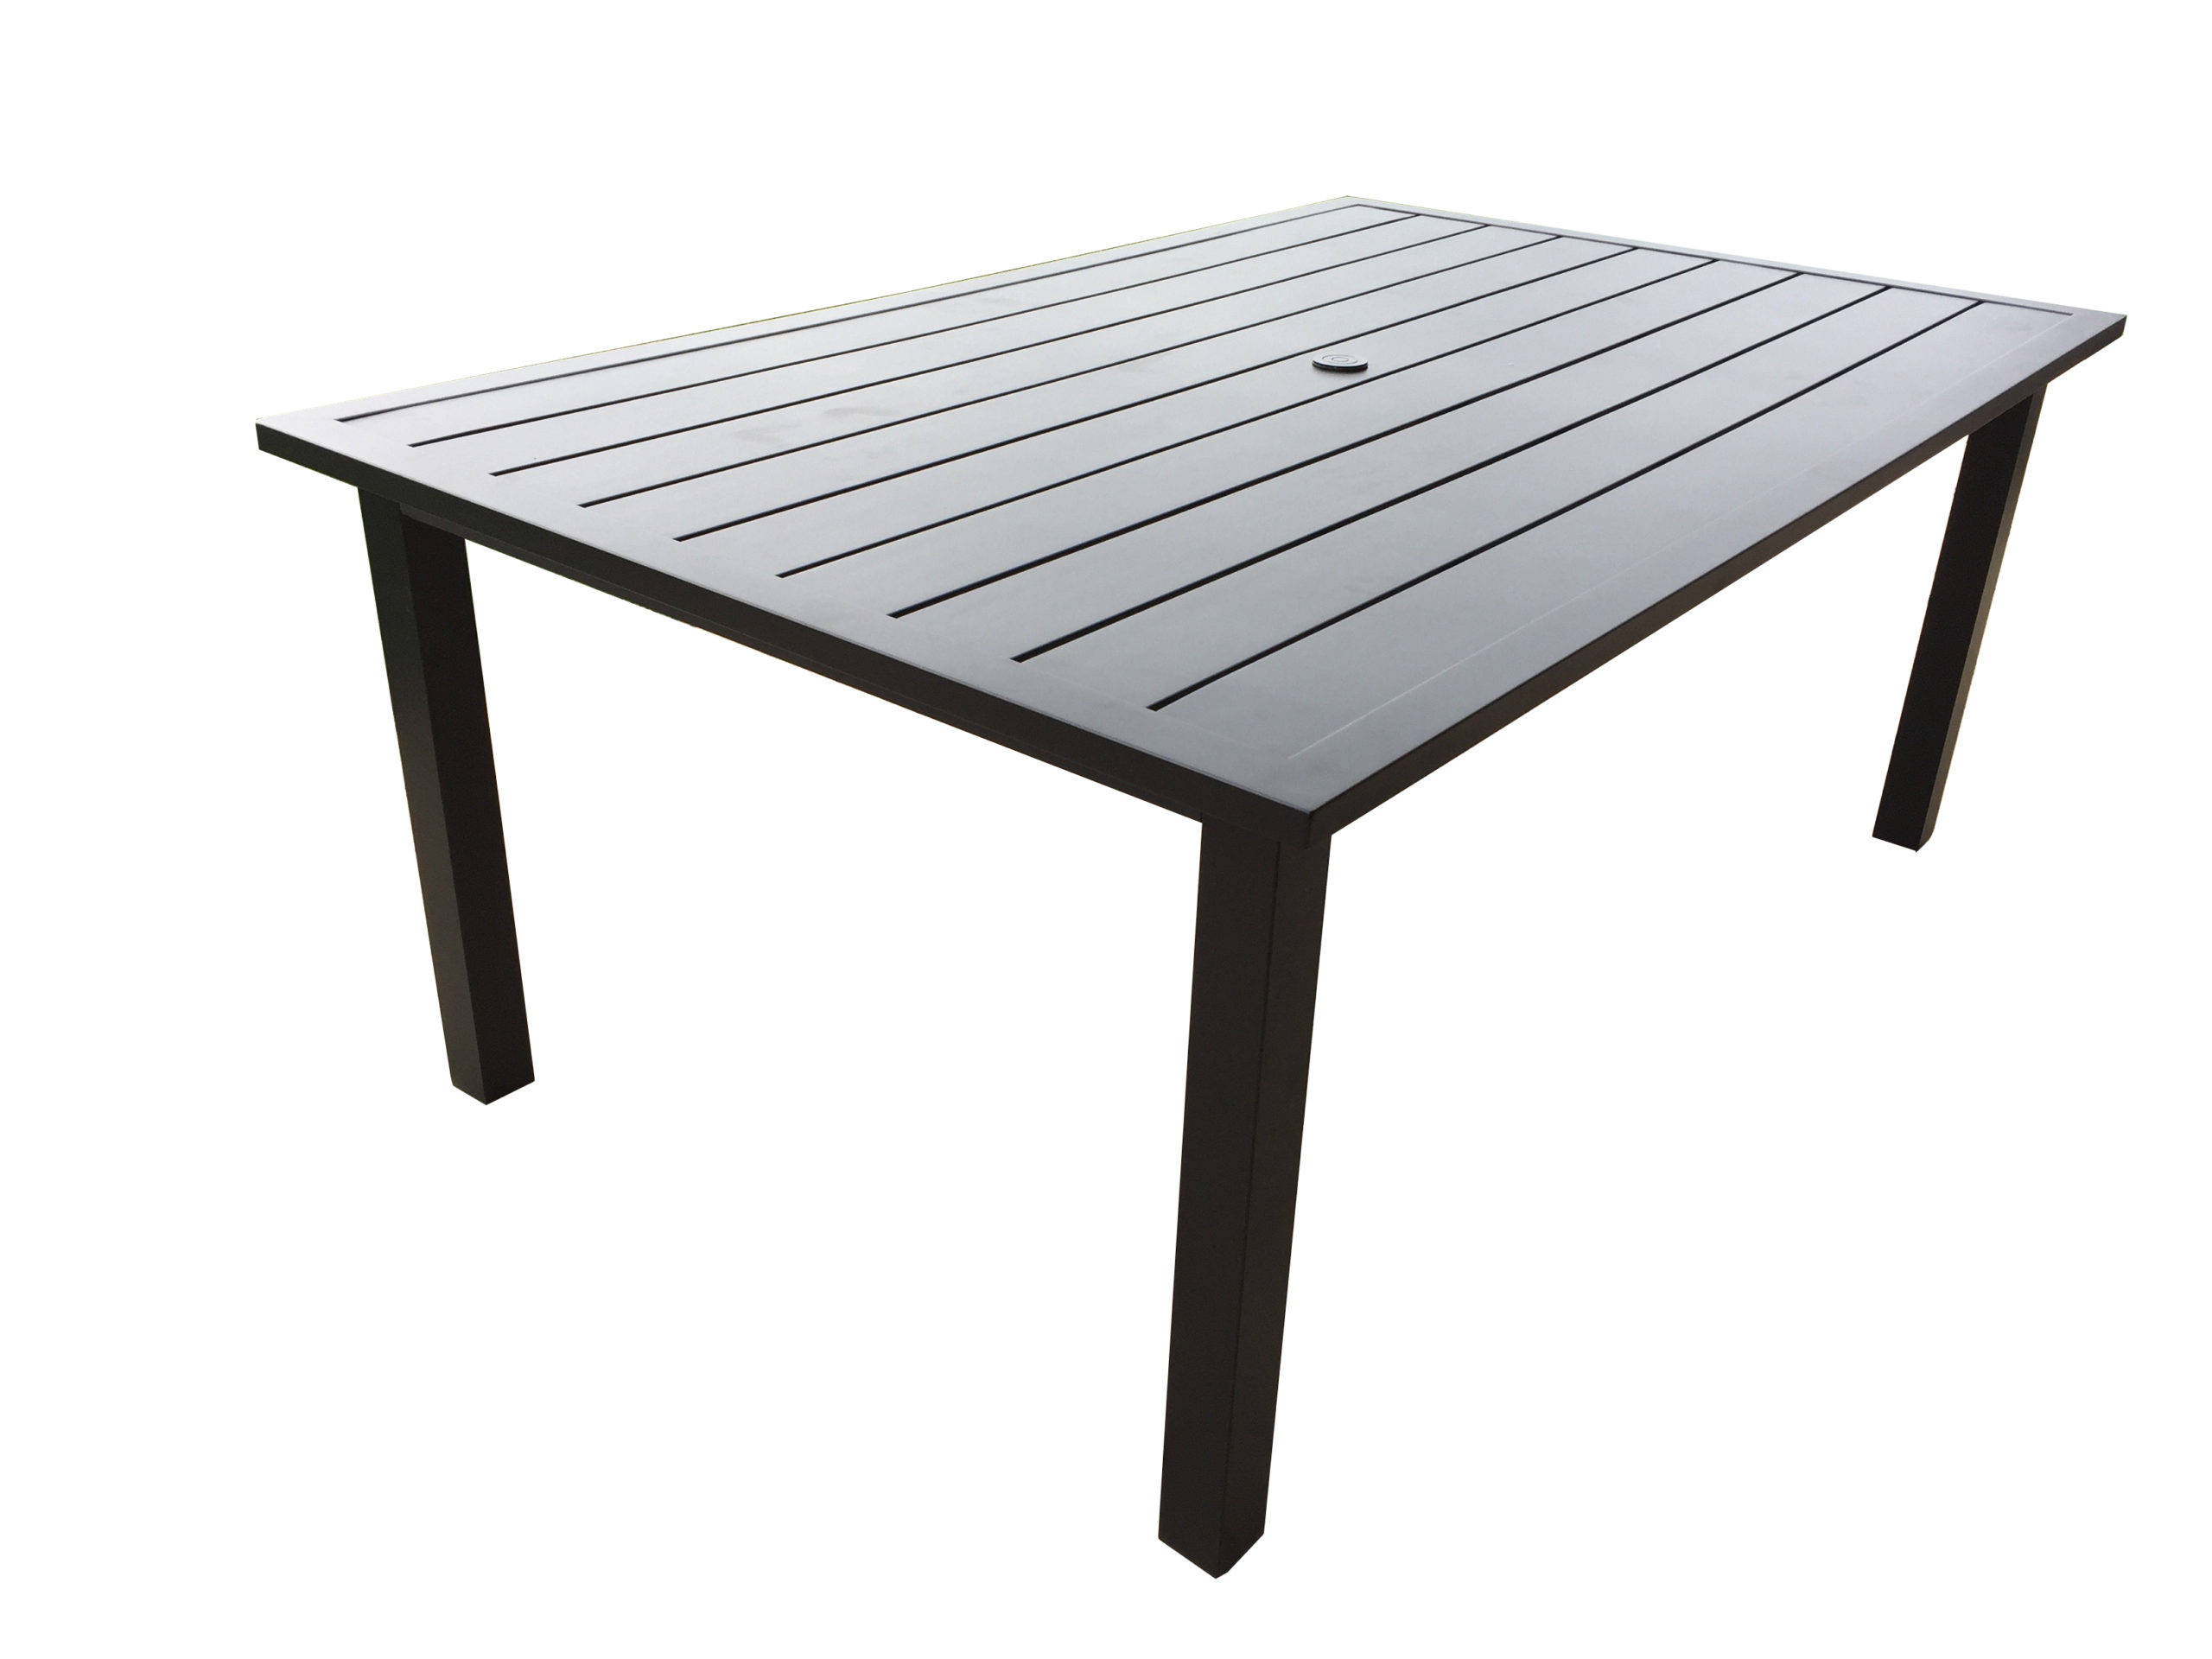 Protege Casual Outdoor Patio Furniture Southampton 45 - Garden Furniture Clearance Southampton